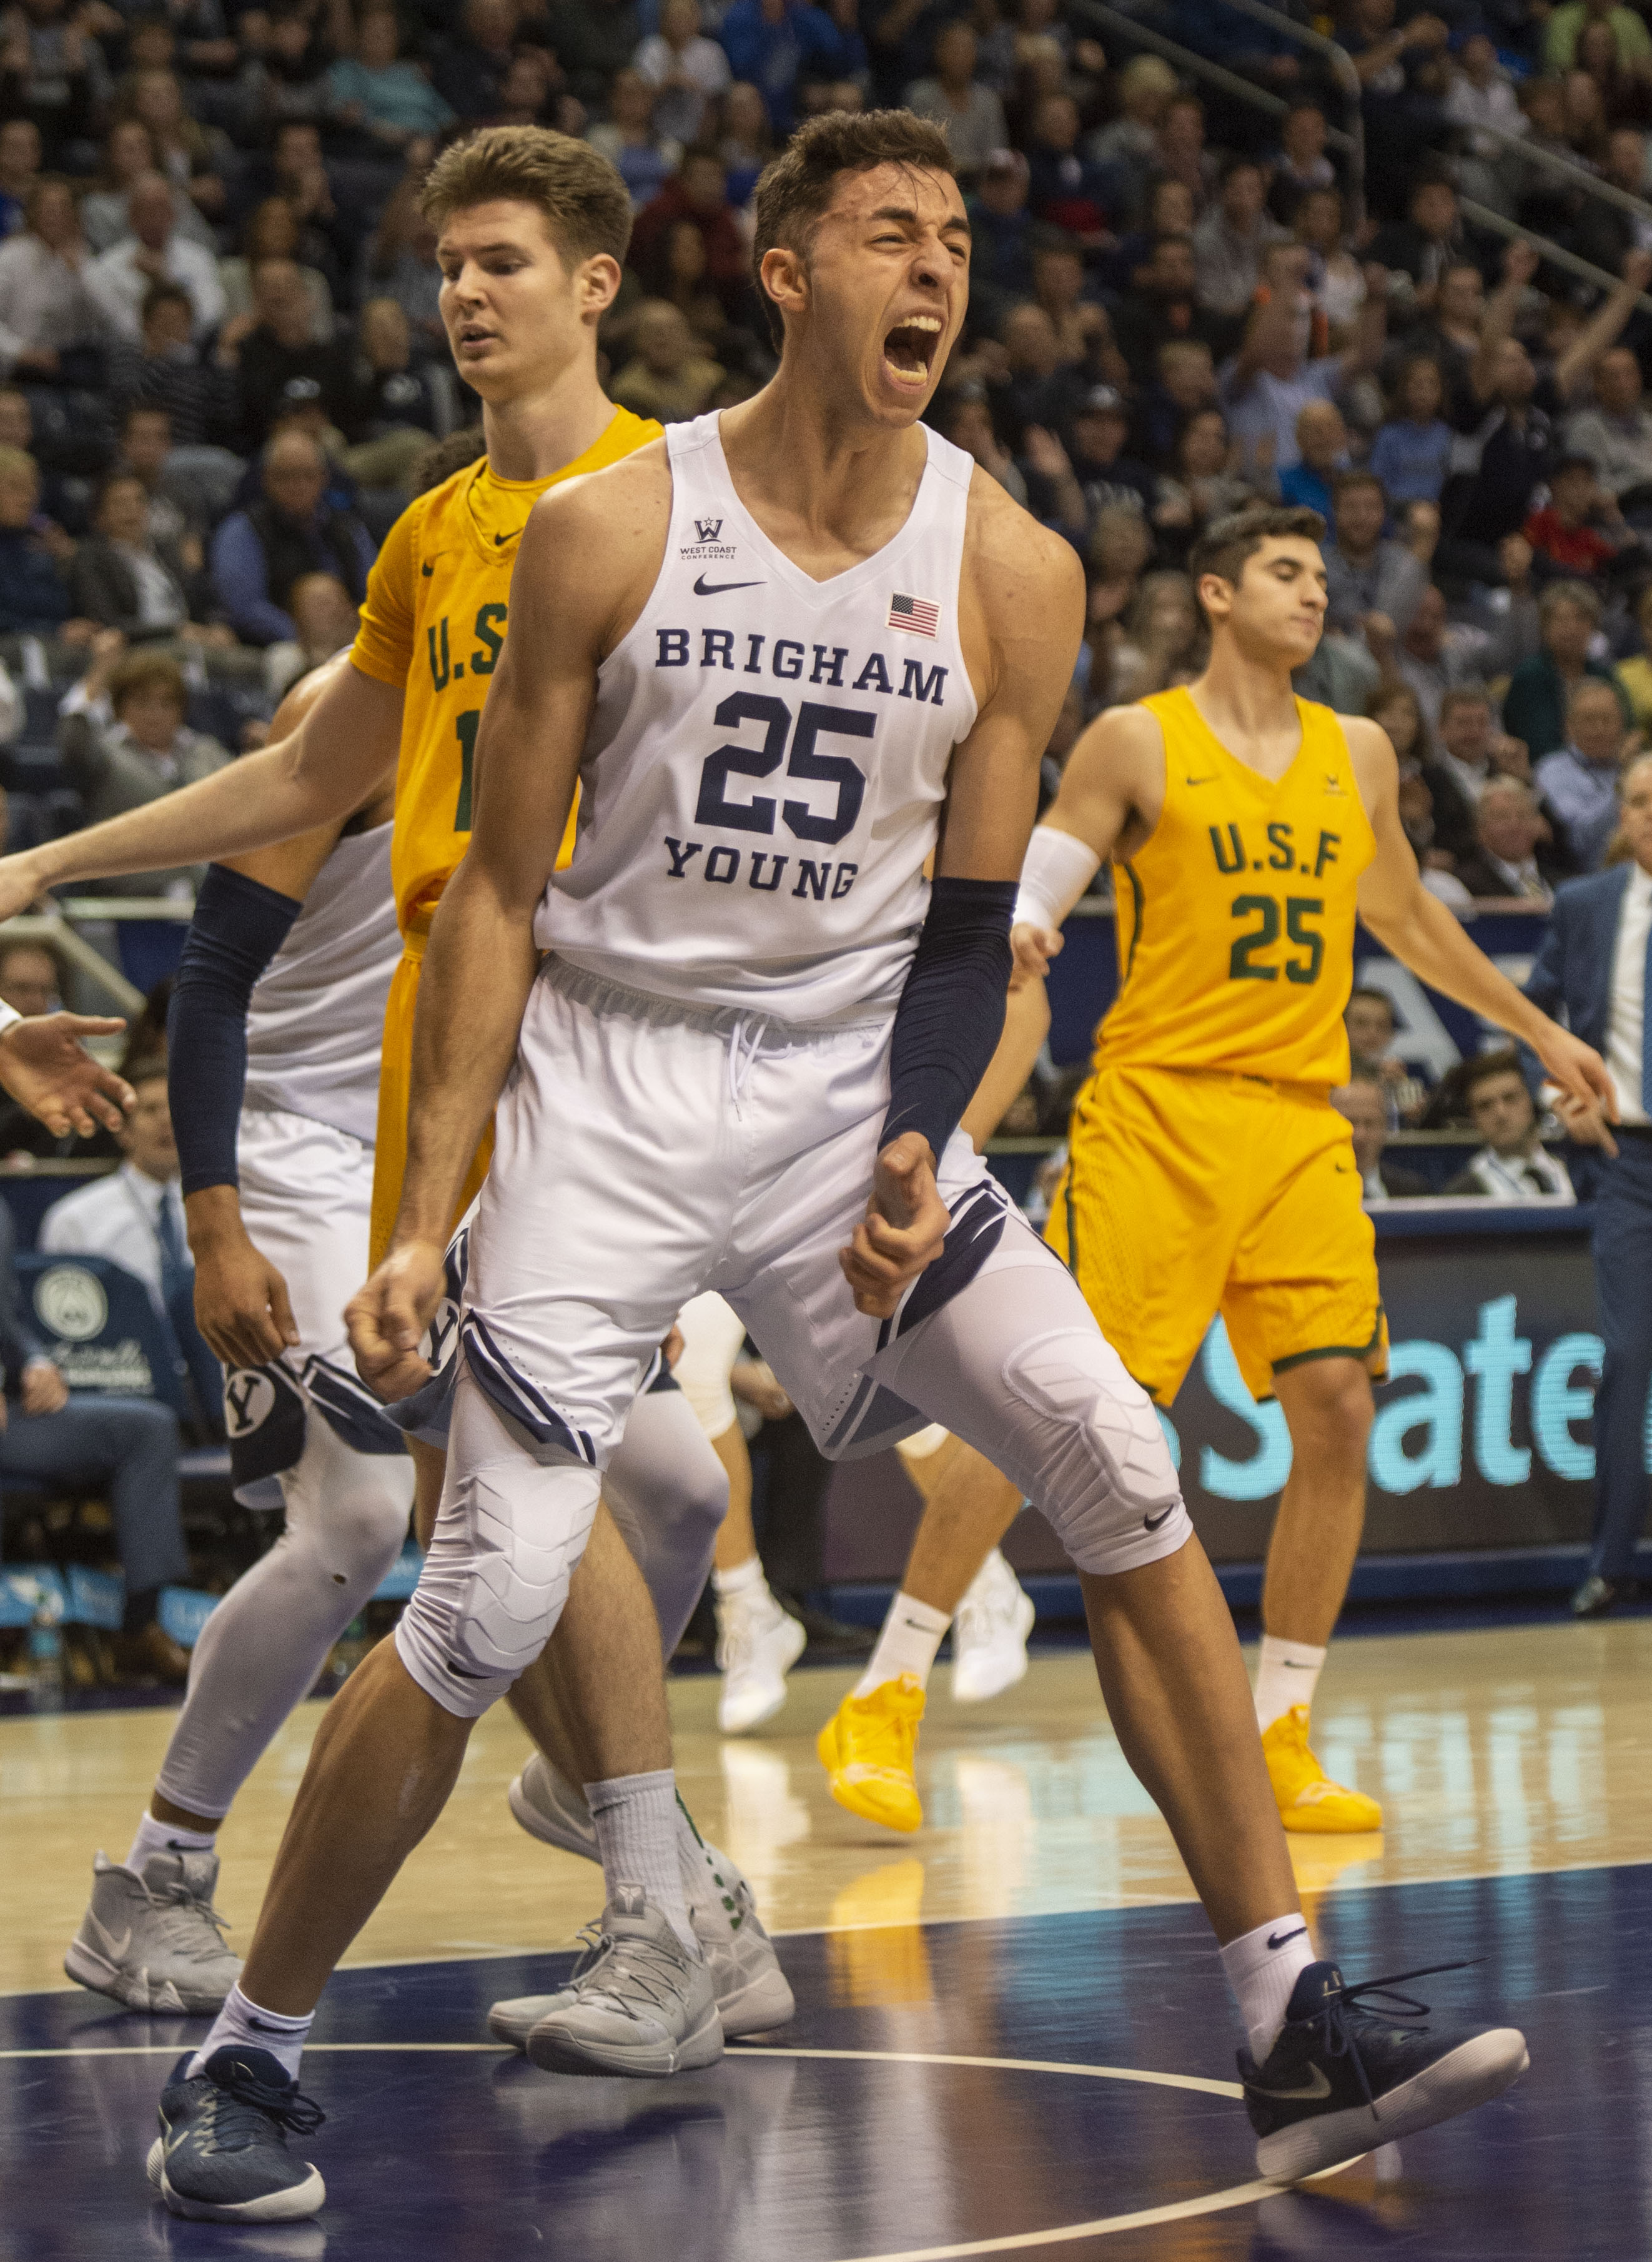 (Rick Egan  |  The Salt Lake Tribune)      Brigham Young Cougars forward Gavin Baxter (25) reacts as the Brigham Young Cougars extend their lead early in the second half, in WCC basketball action between Brigham Young Cougars and San Francisco Dons, at the Marriott  Center, Thursday, February 21, 2018.